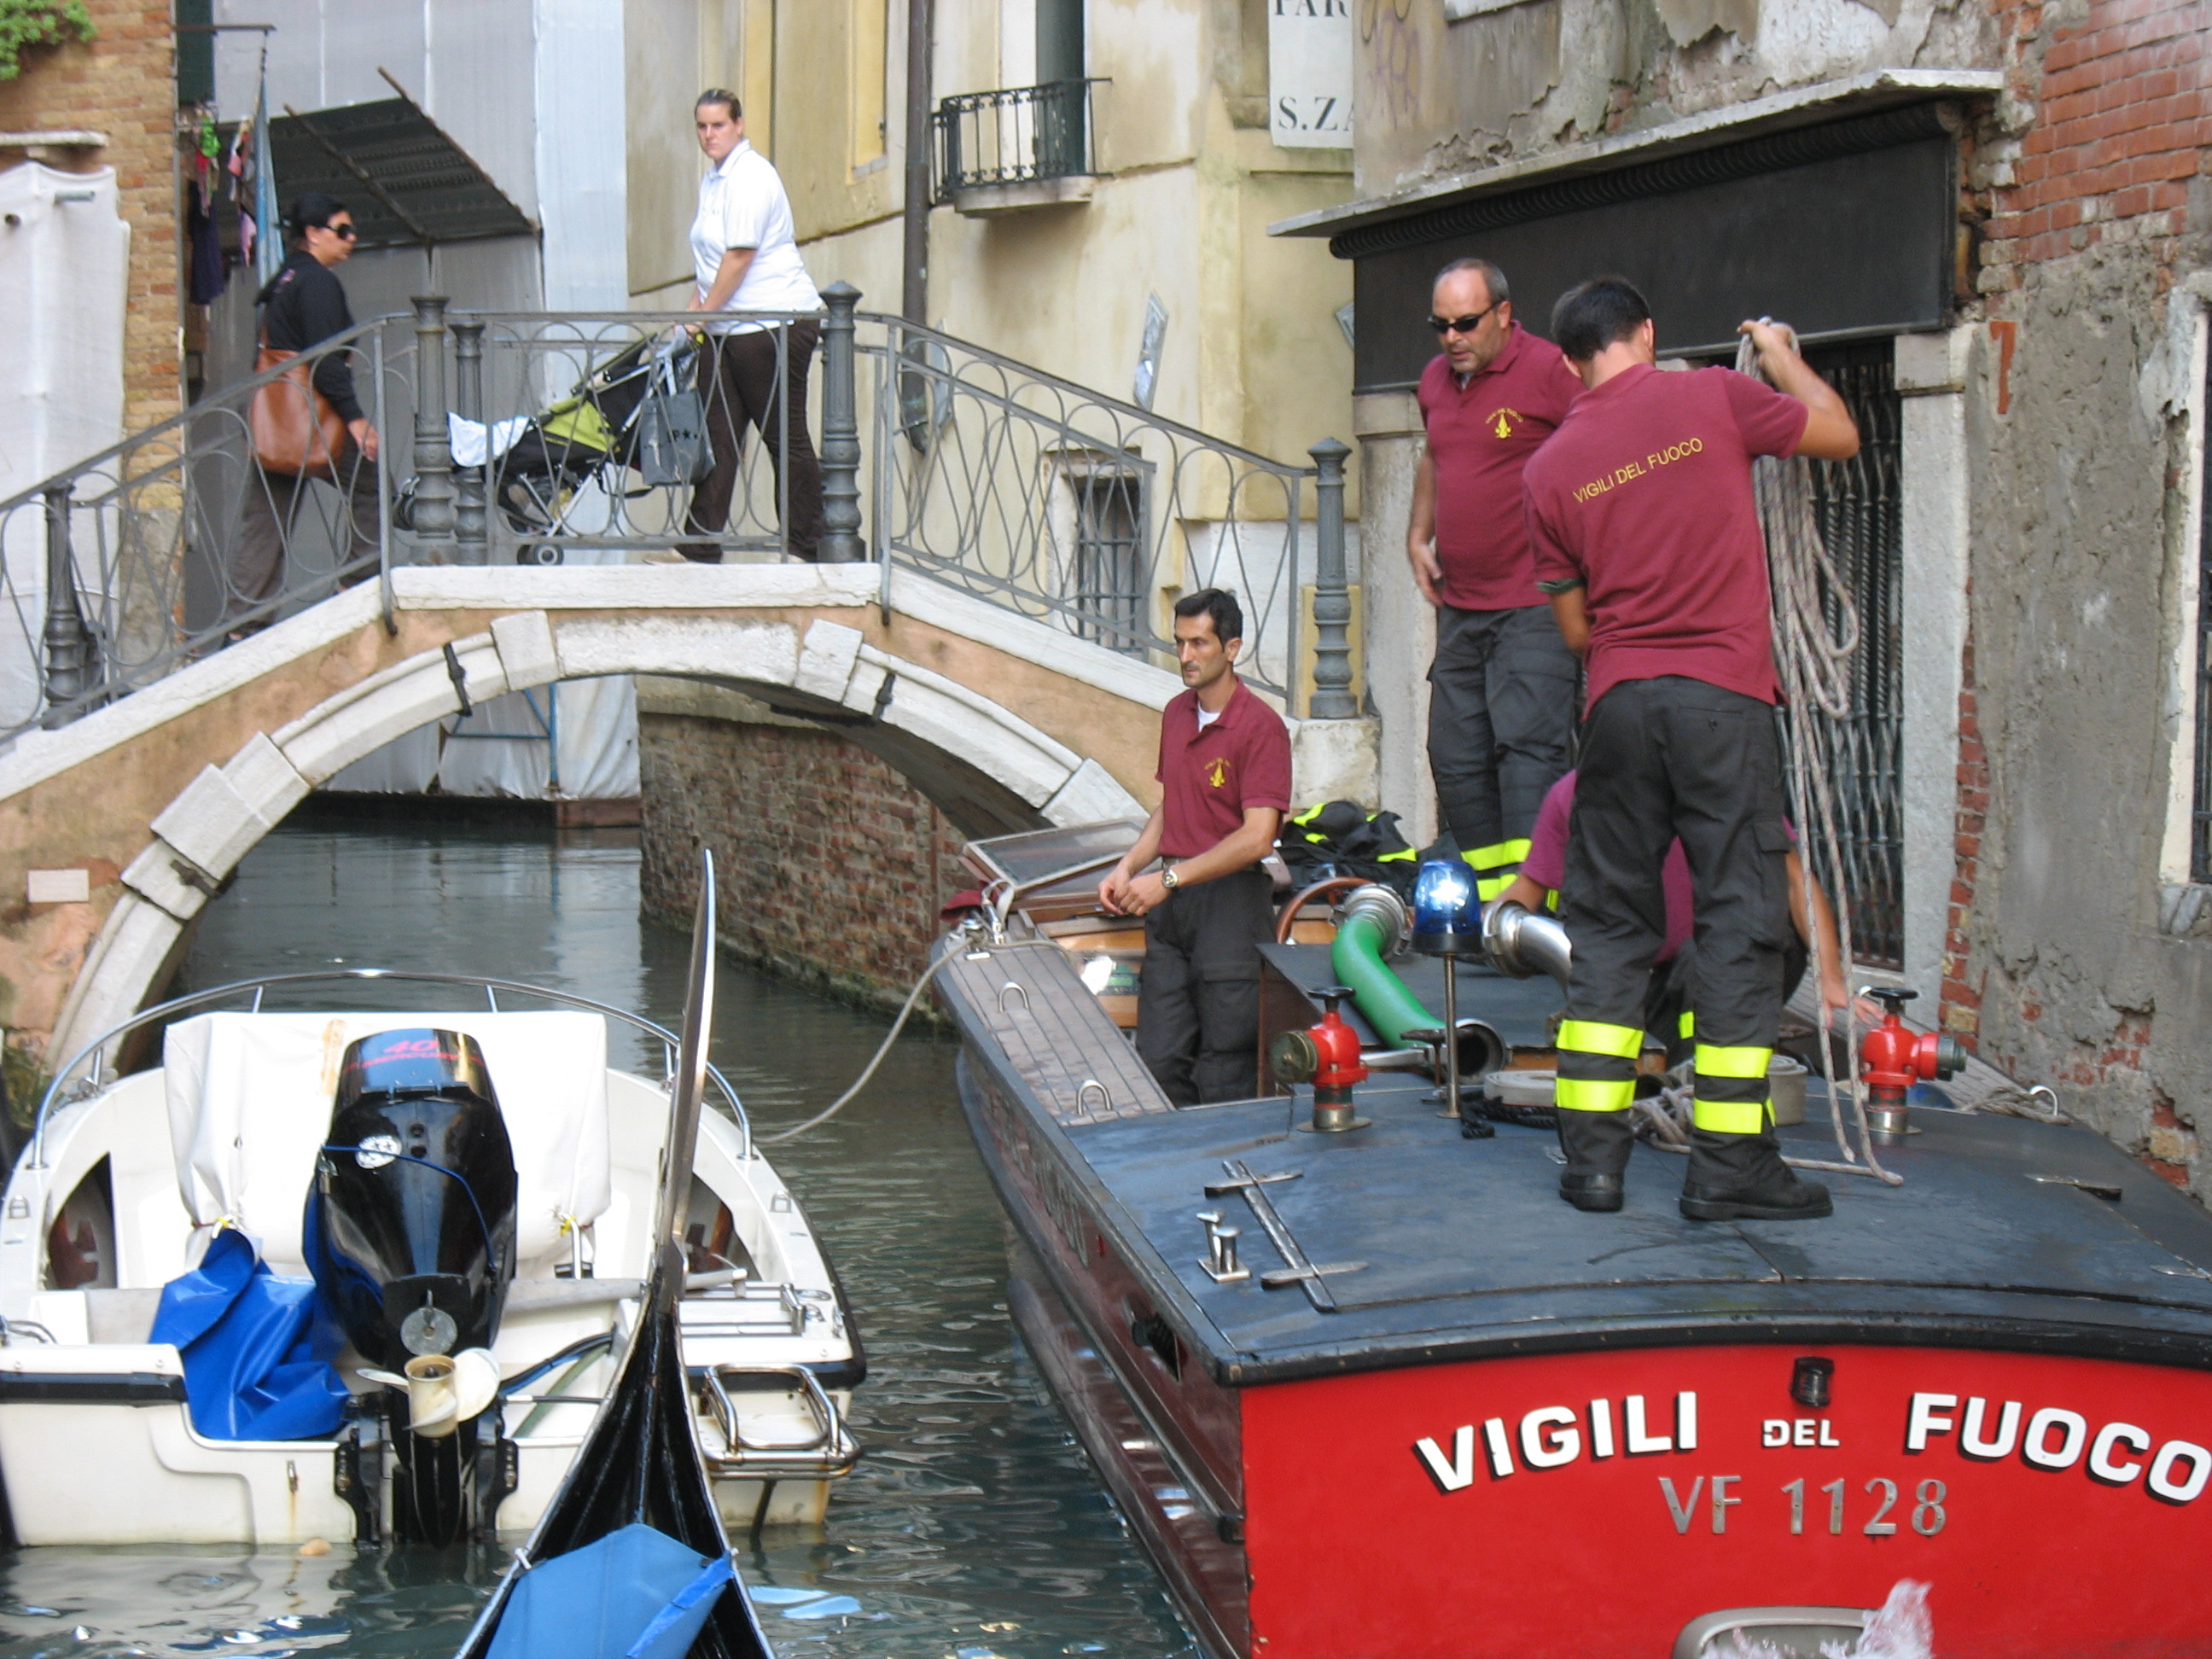 Venice fire team to the rescue